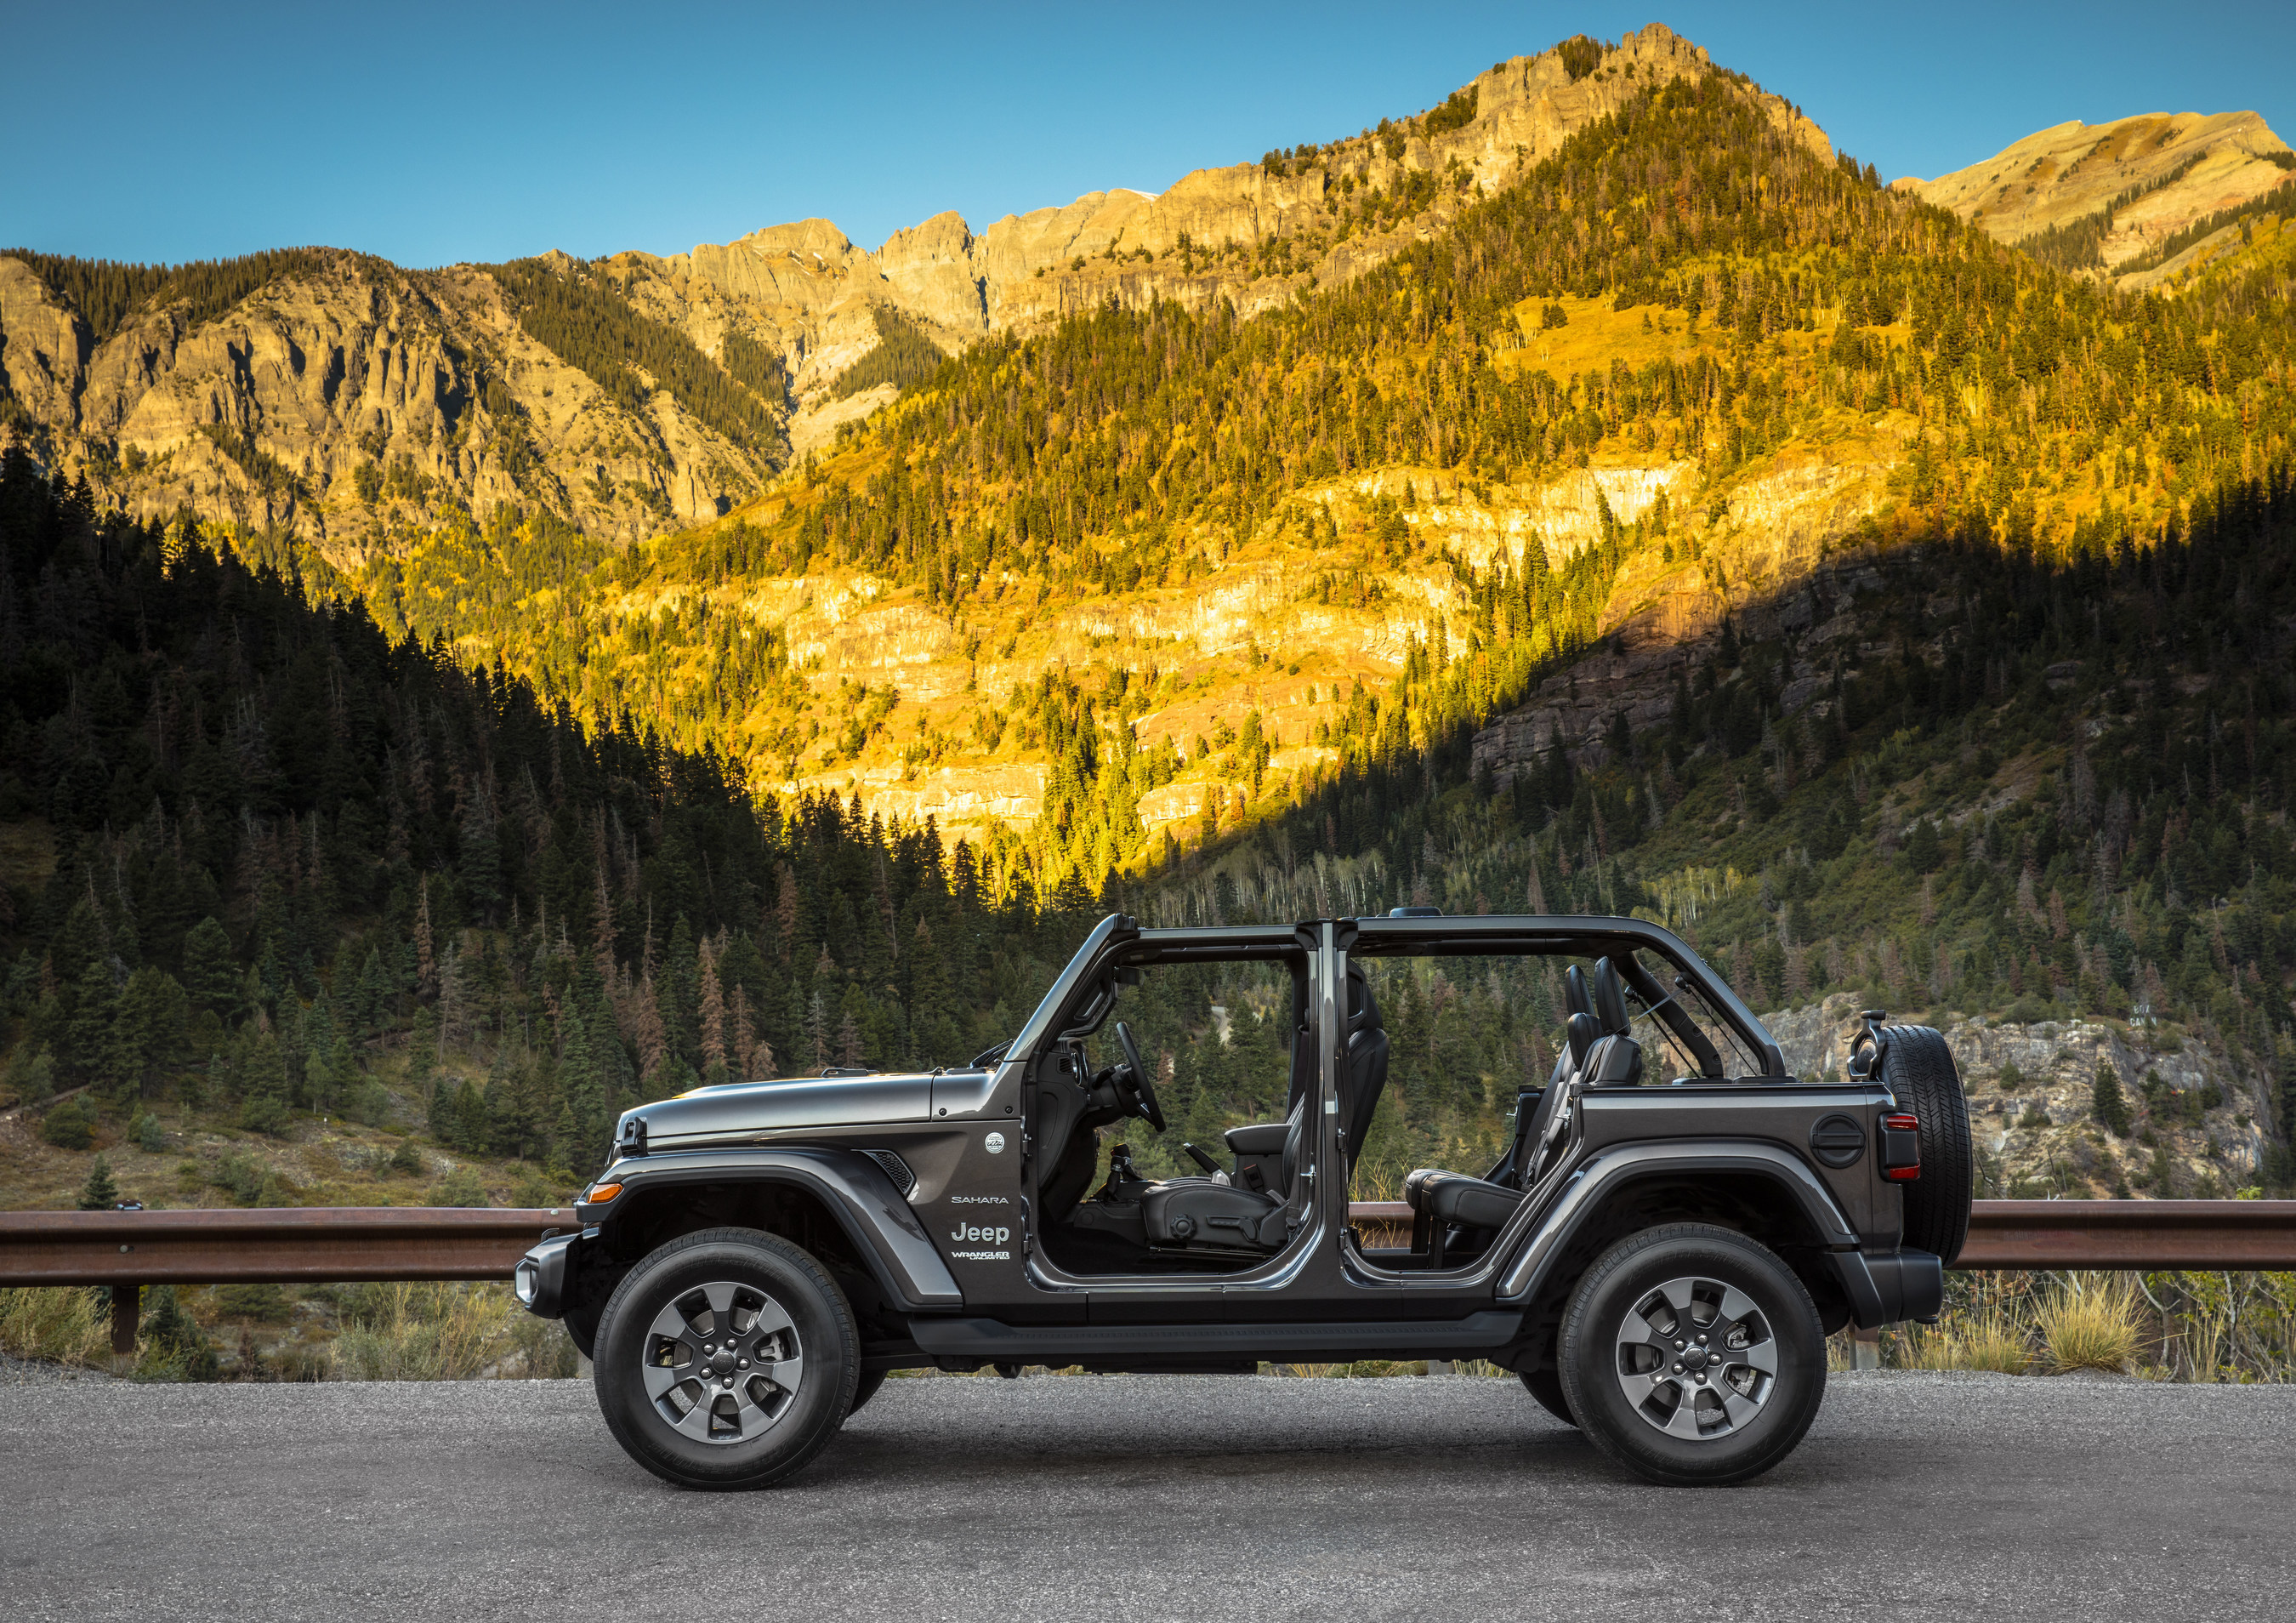 "The Jeep brand launches ""Legends Aren't Born, They're Made"" marketing campaign cementing brand's legendary SUV status (""Anthem"" 30-second spot includes images of James Dean, Babe Ruth and Misty Copeland)."